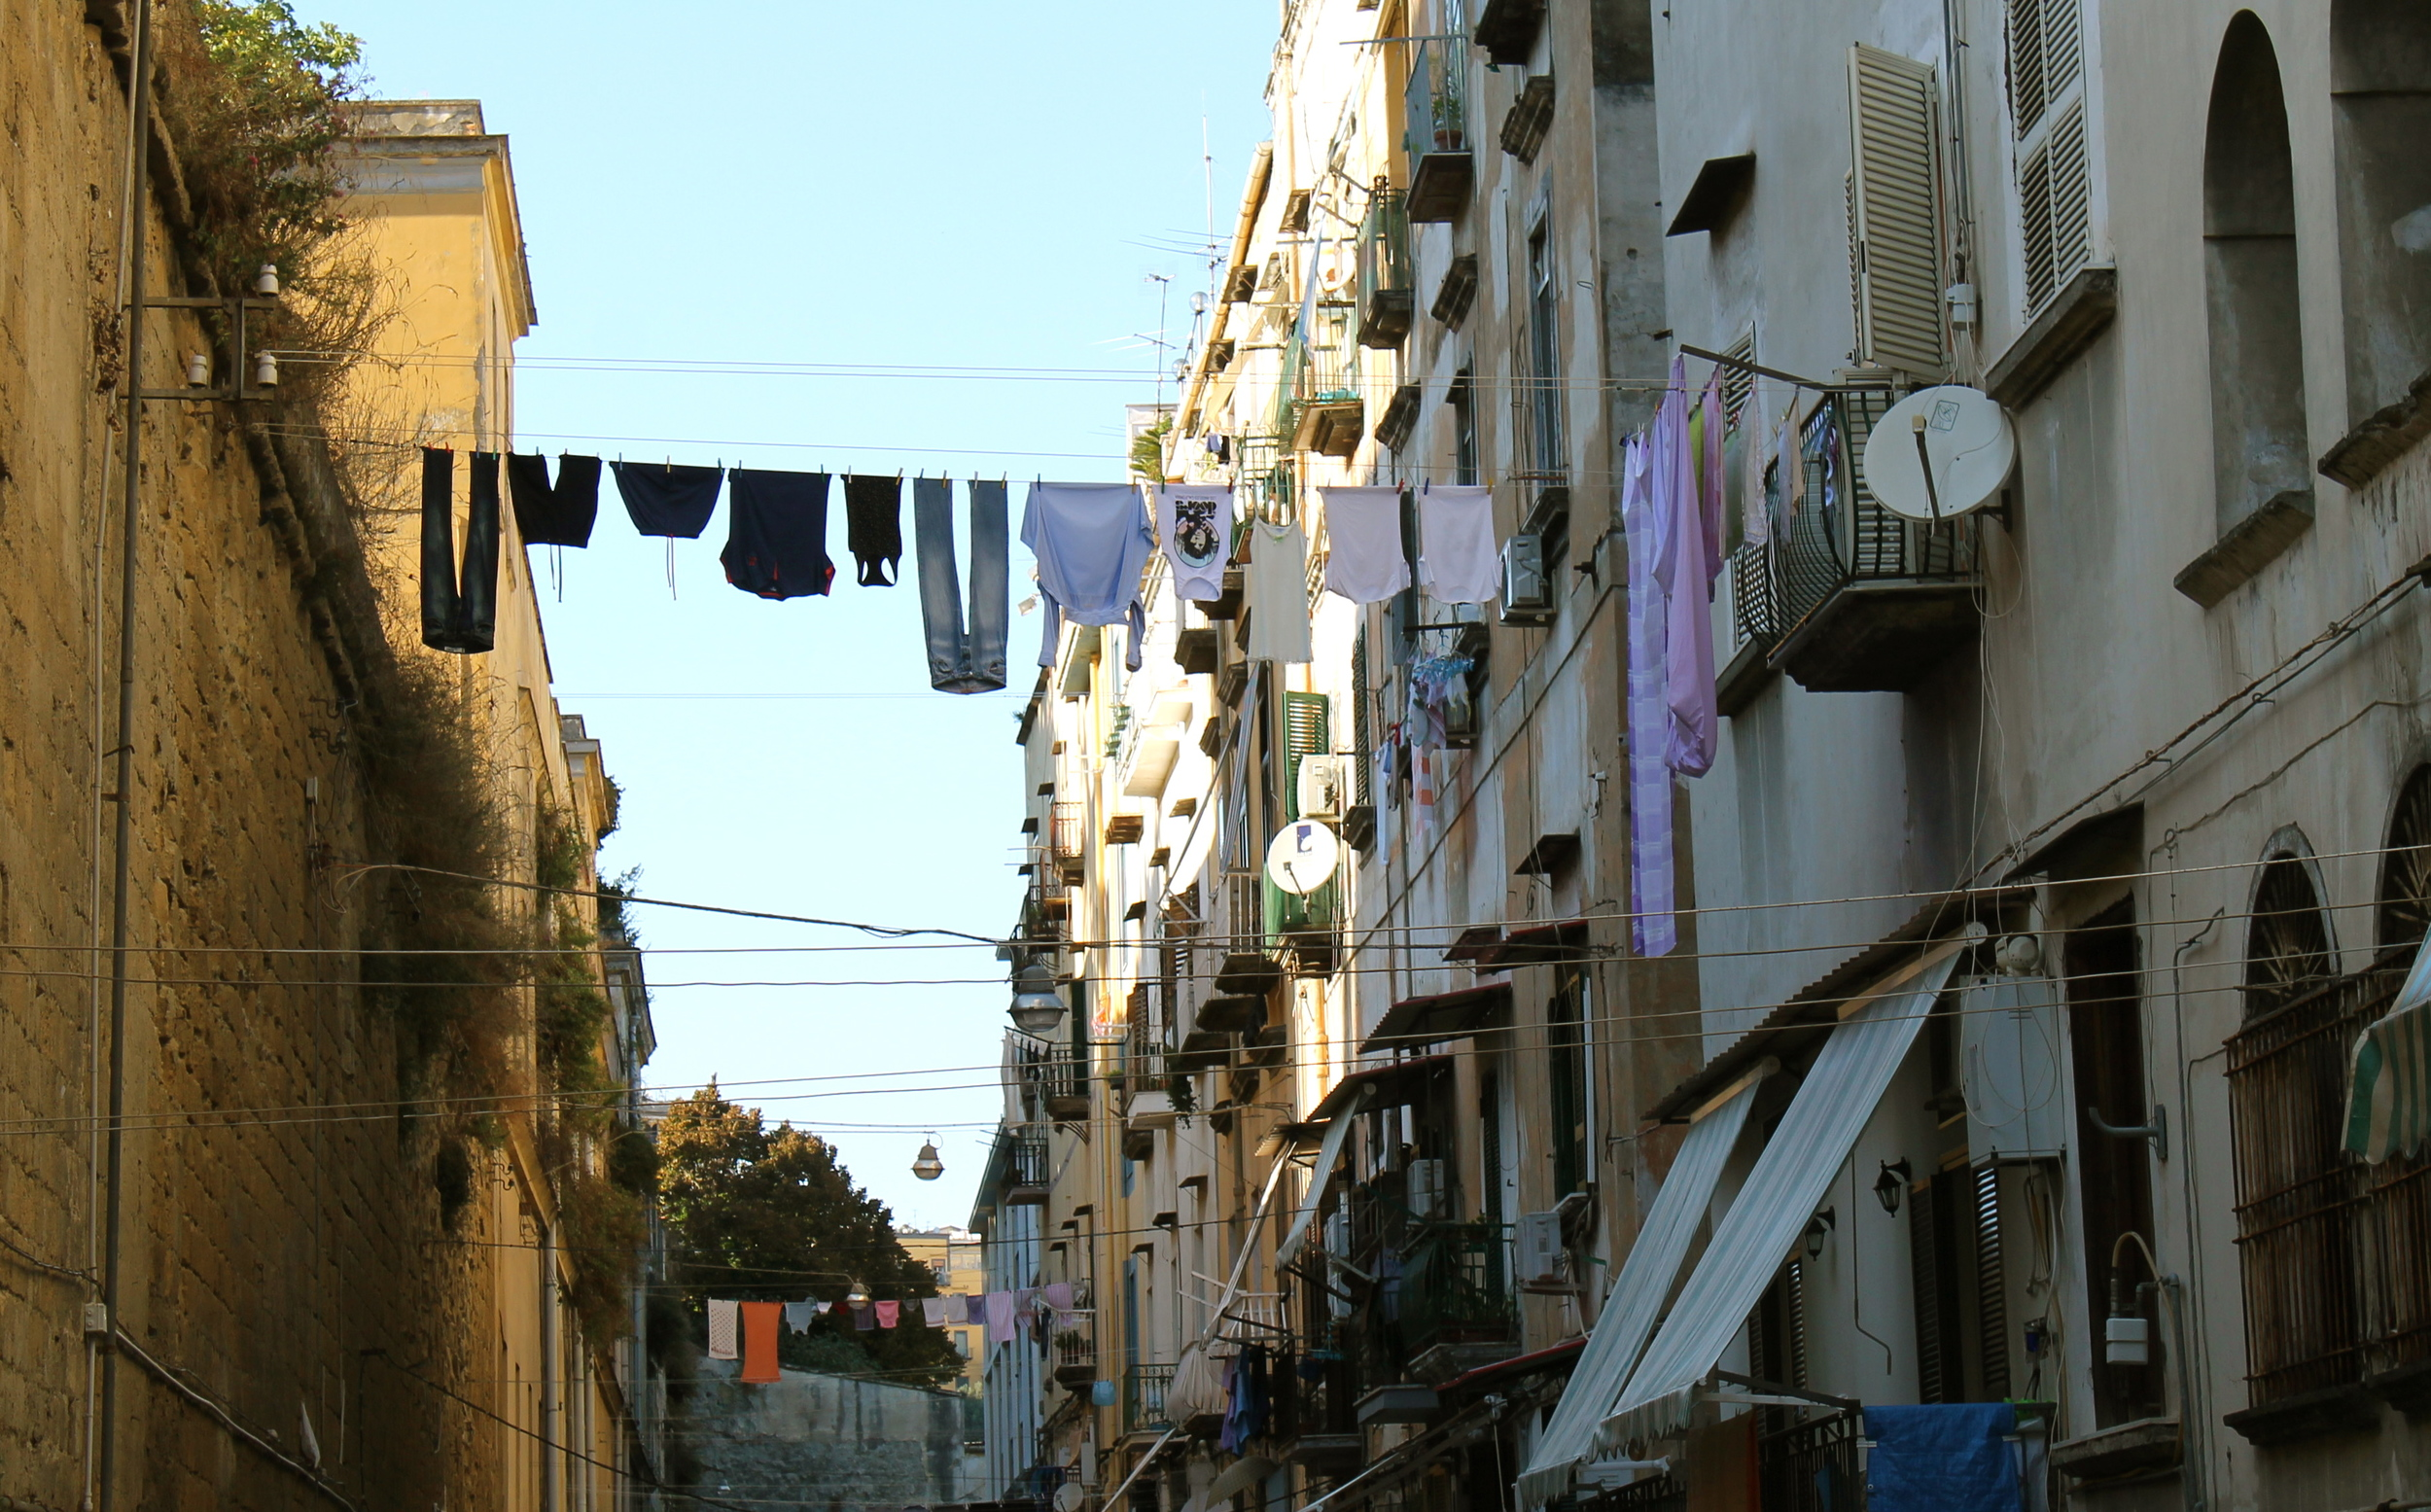 Clotheslines are EVERYWHERE in Naples.